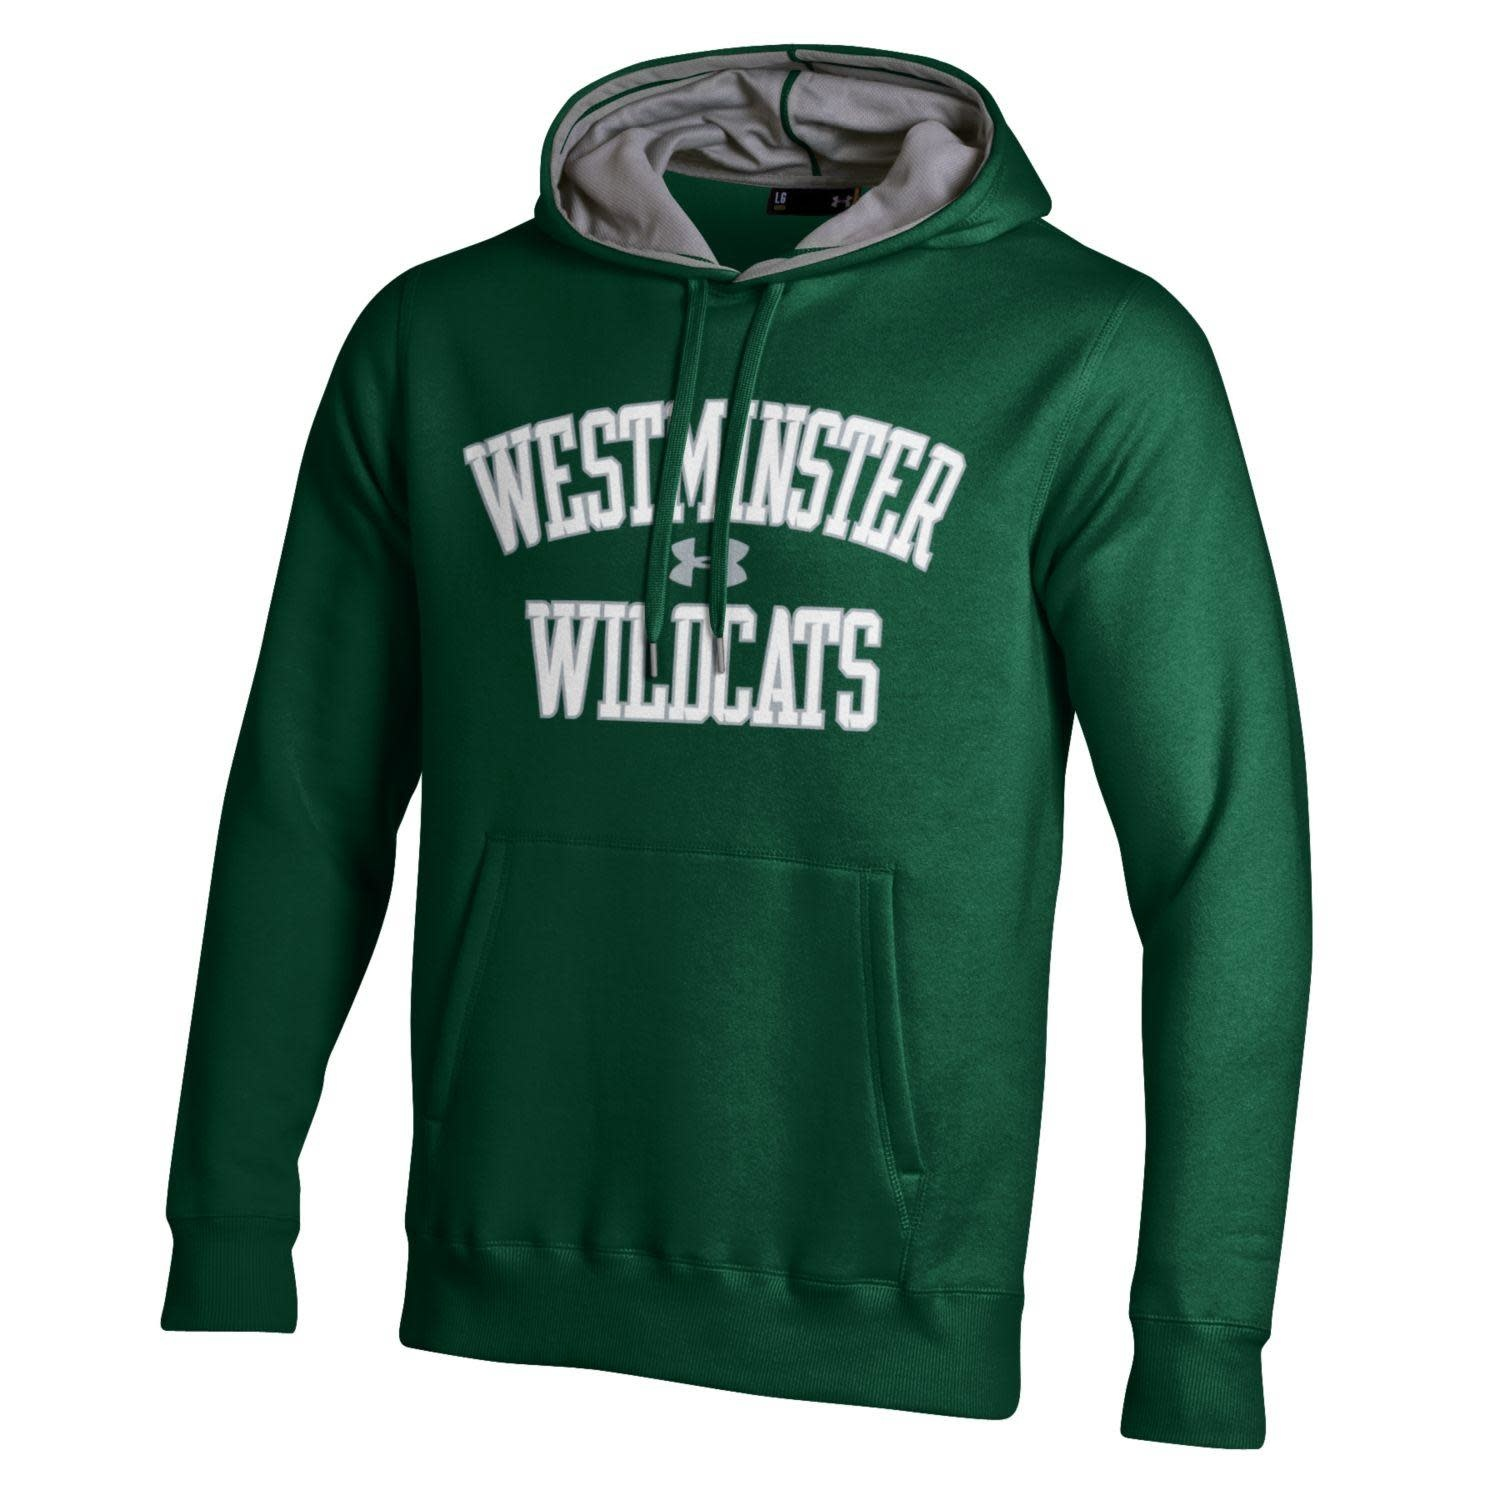 Under Armour Sweatshirt: UA Rival Fleece Hoody - UA logo, West Wildcats - Green